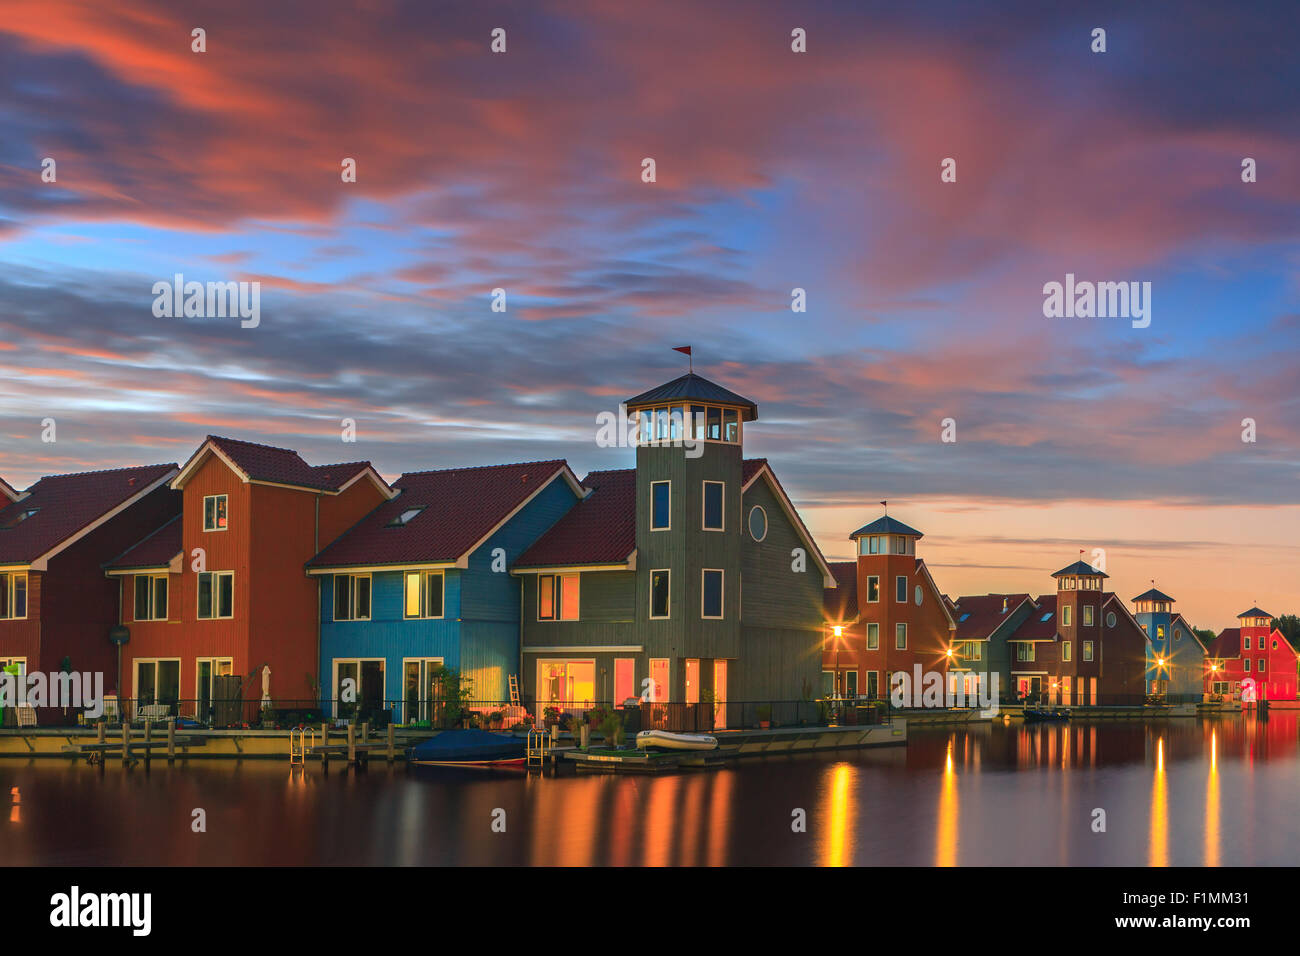 Colourful houses at Reitdiephaven, Groningen, Netherlands - Stock Image